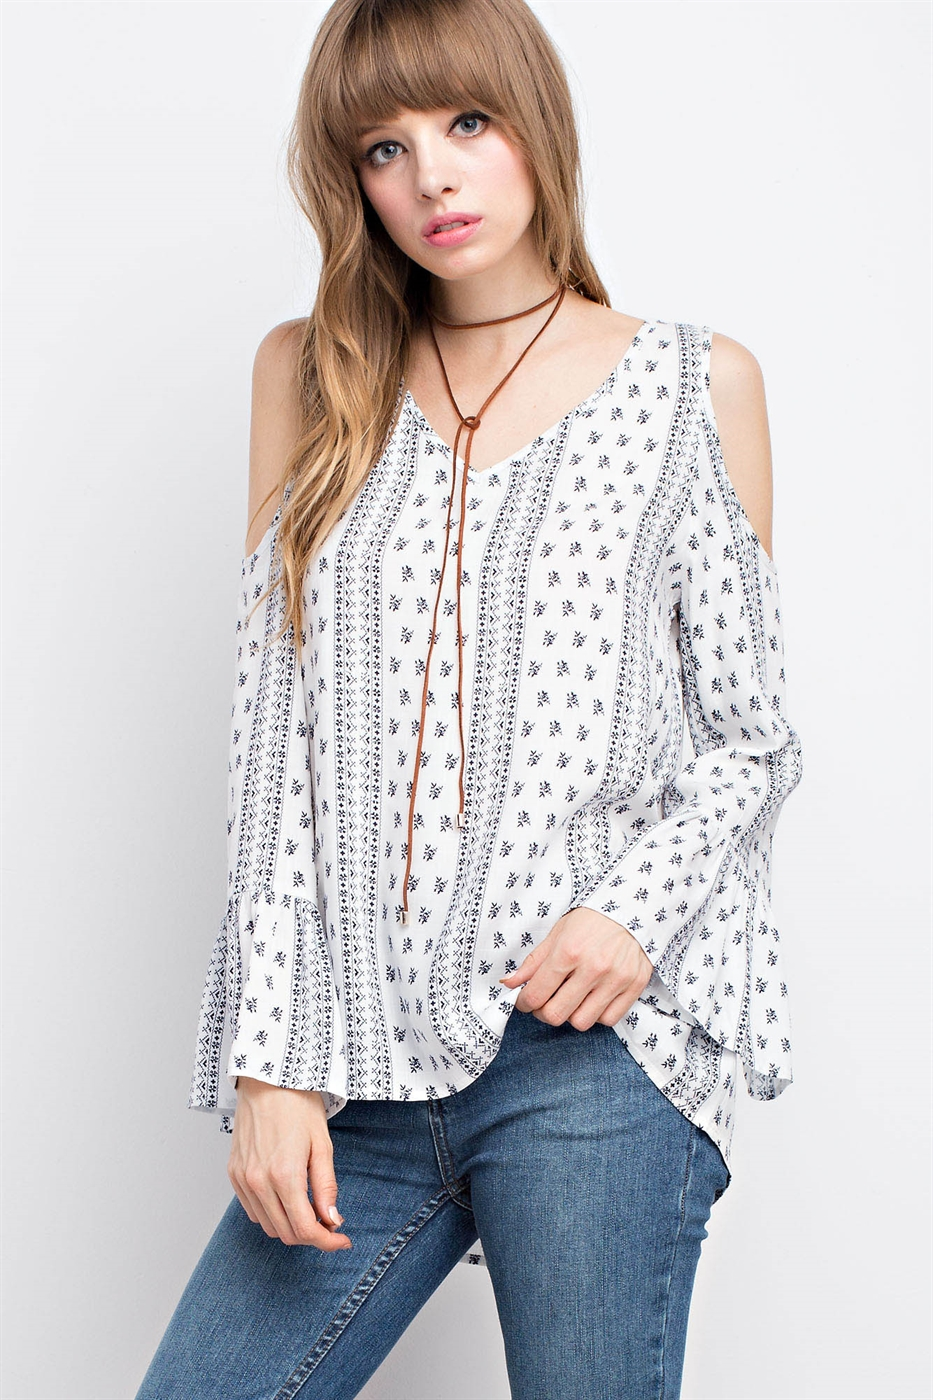 BORDER PRINT BELL SLEEVED TOP - orangeshine.com